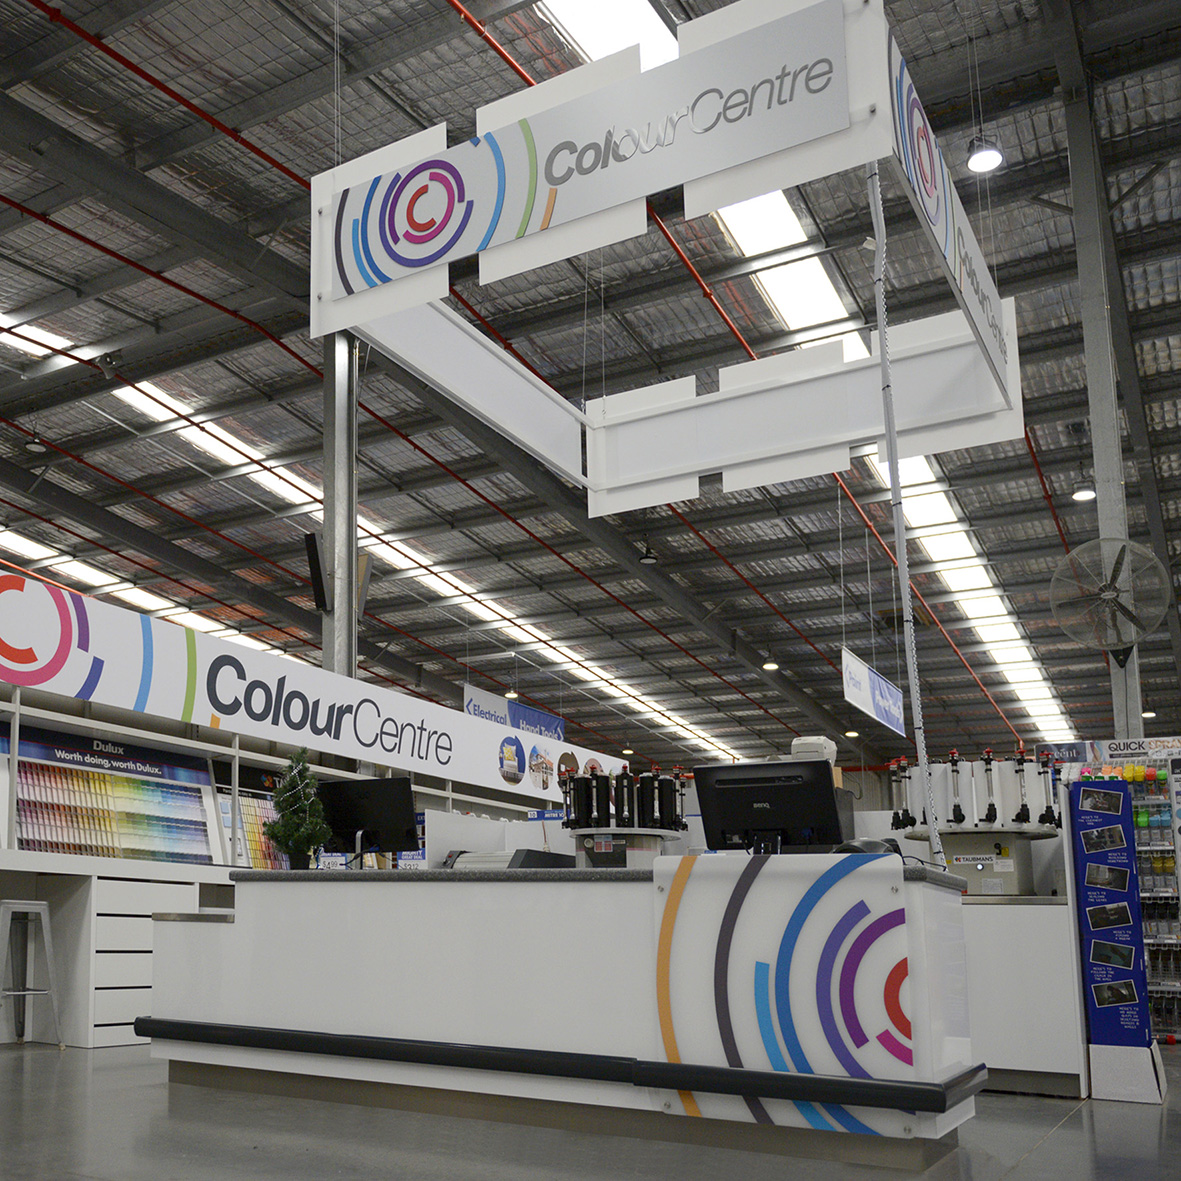 STAWELL_PAINT COUNTER